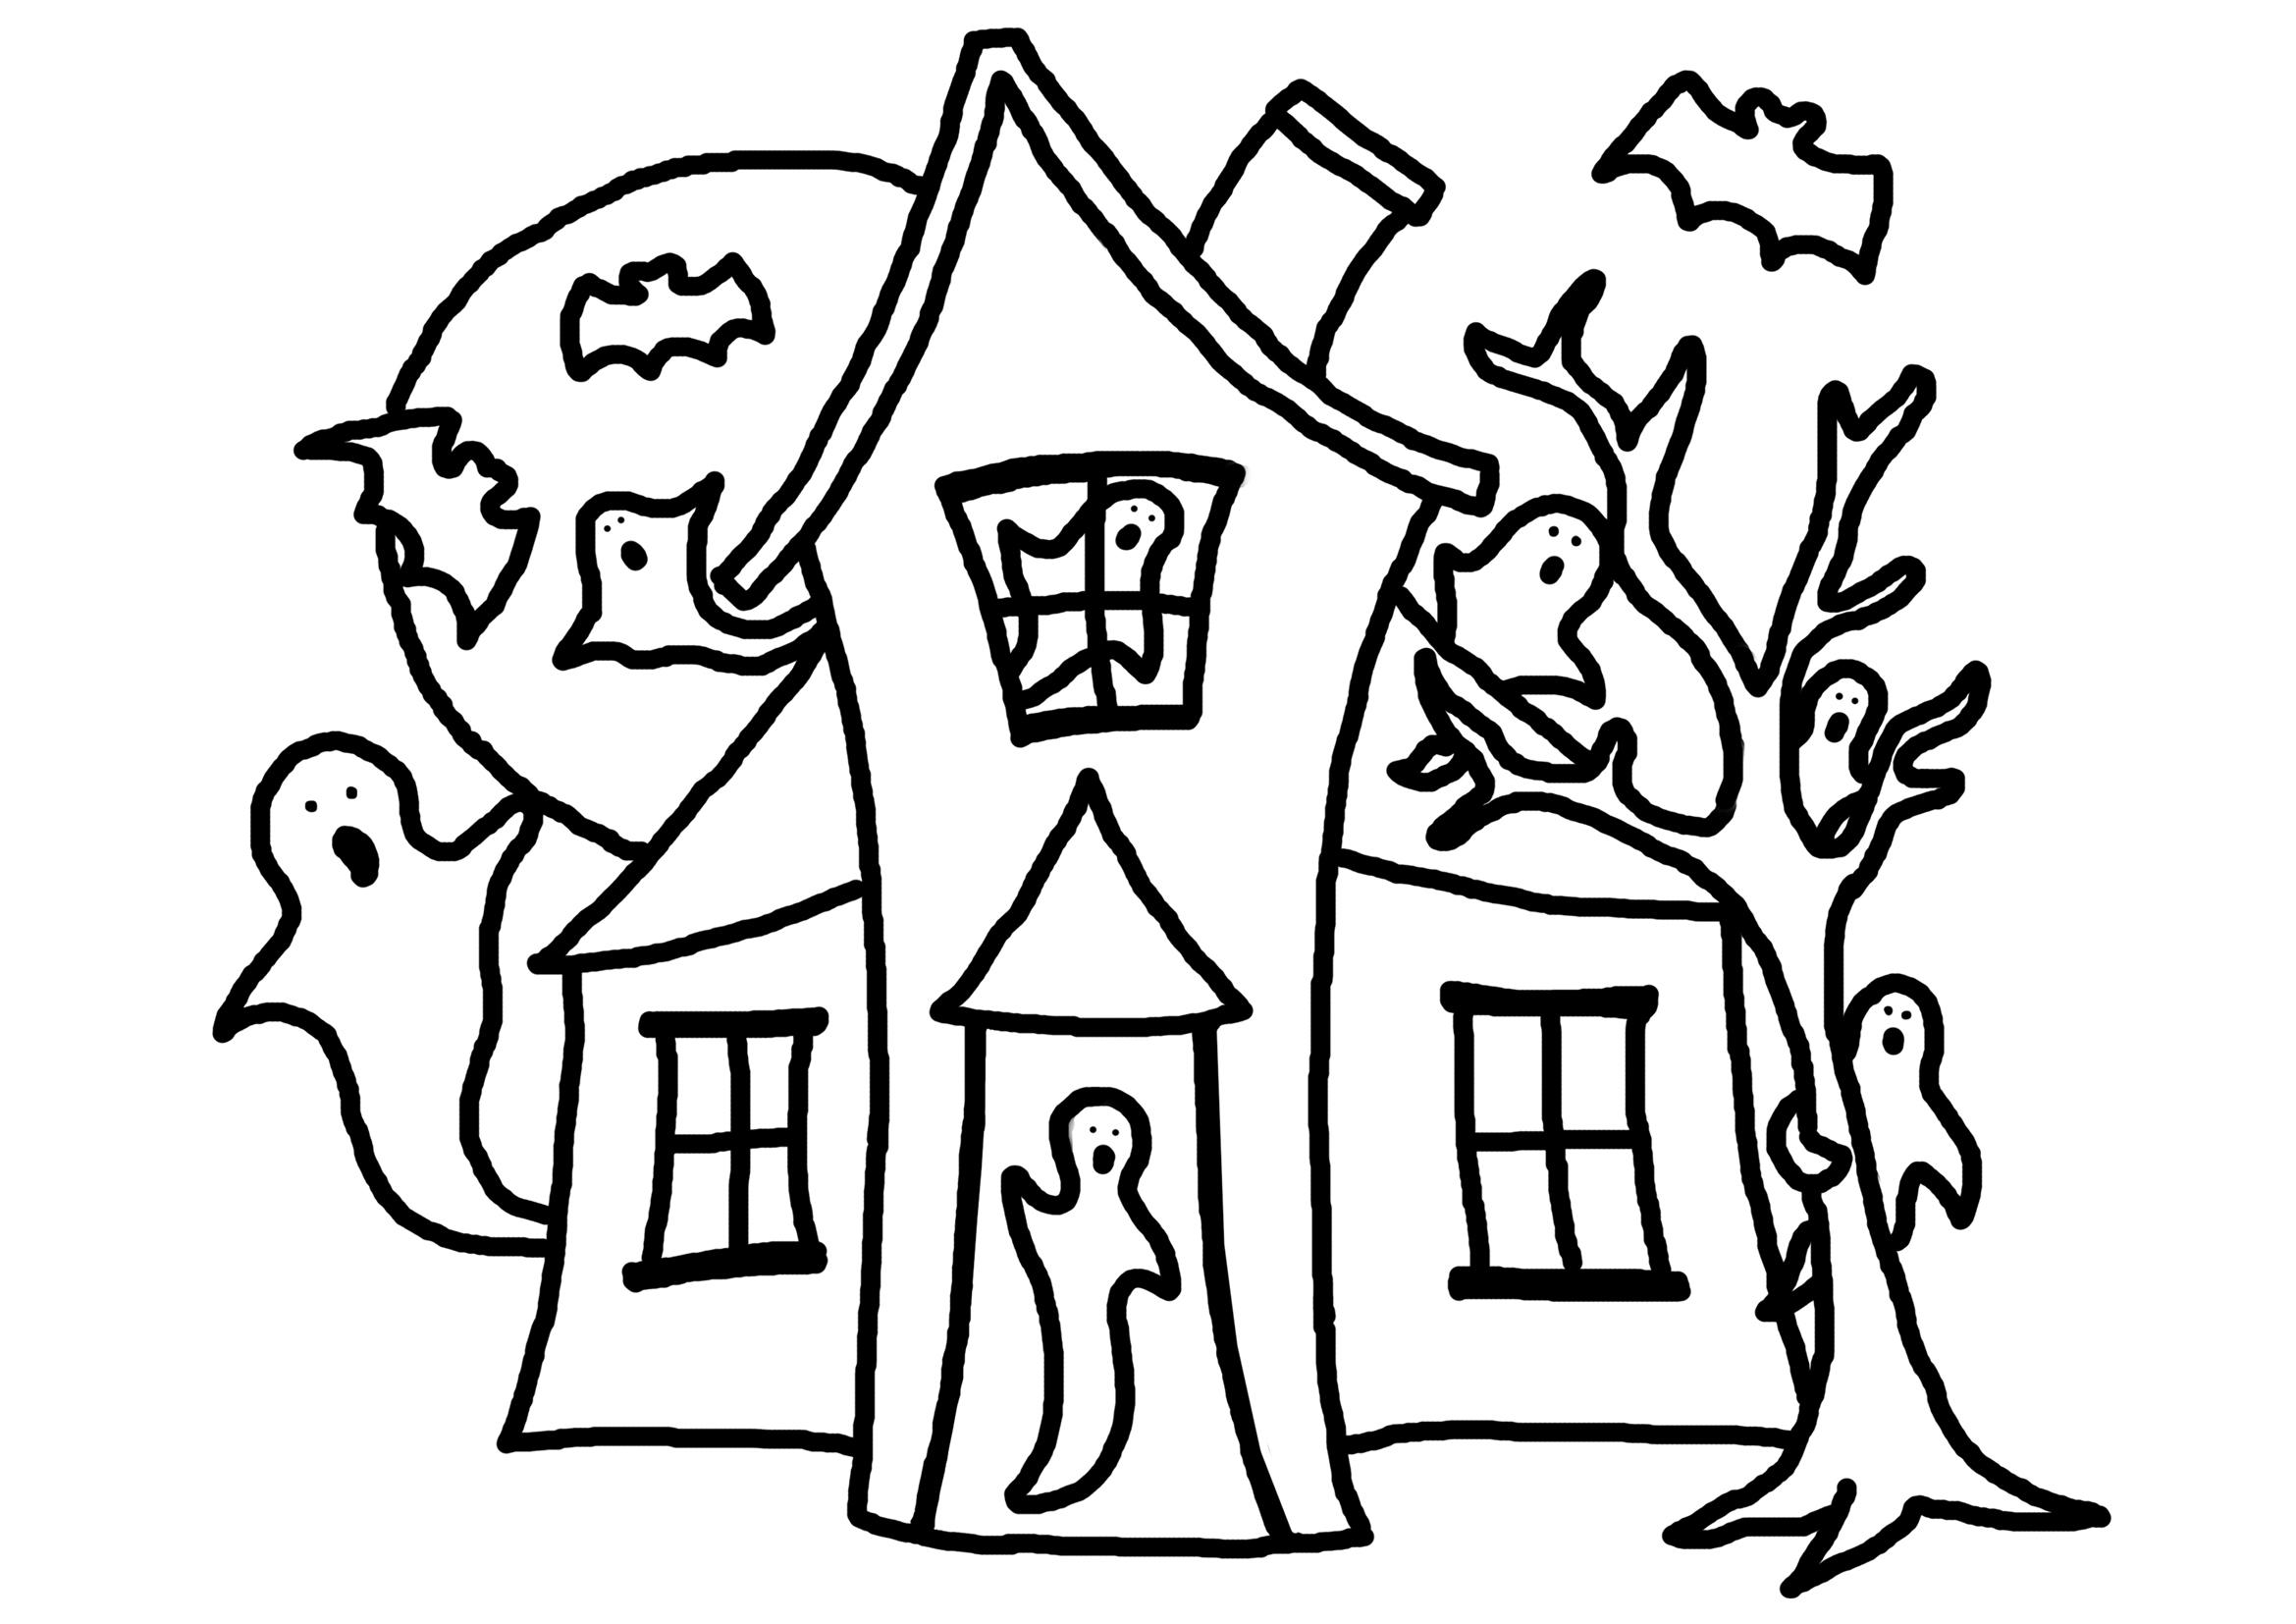 coloring page house architecture house rounded architecture adult coloring house coloring page